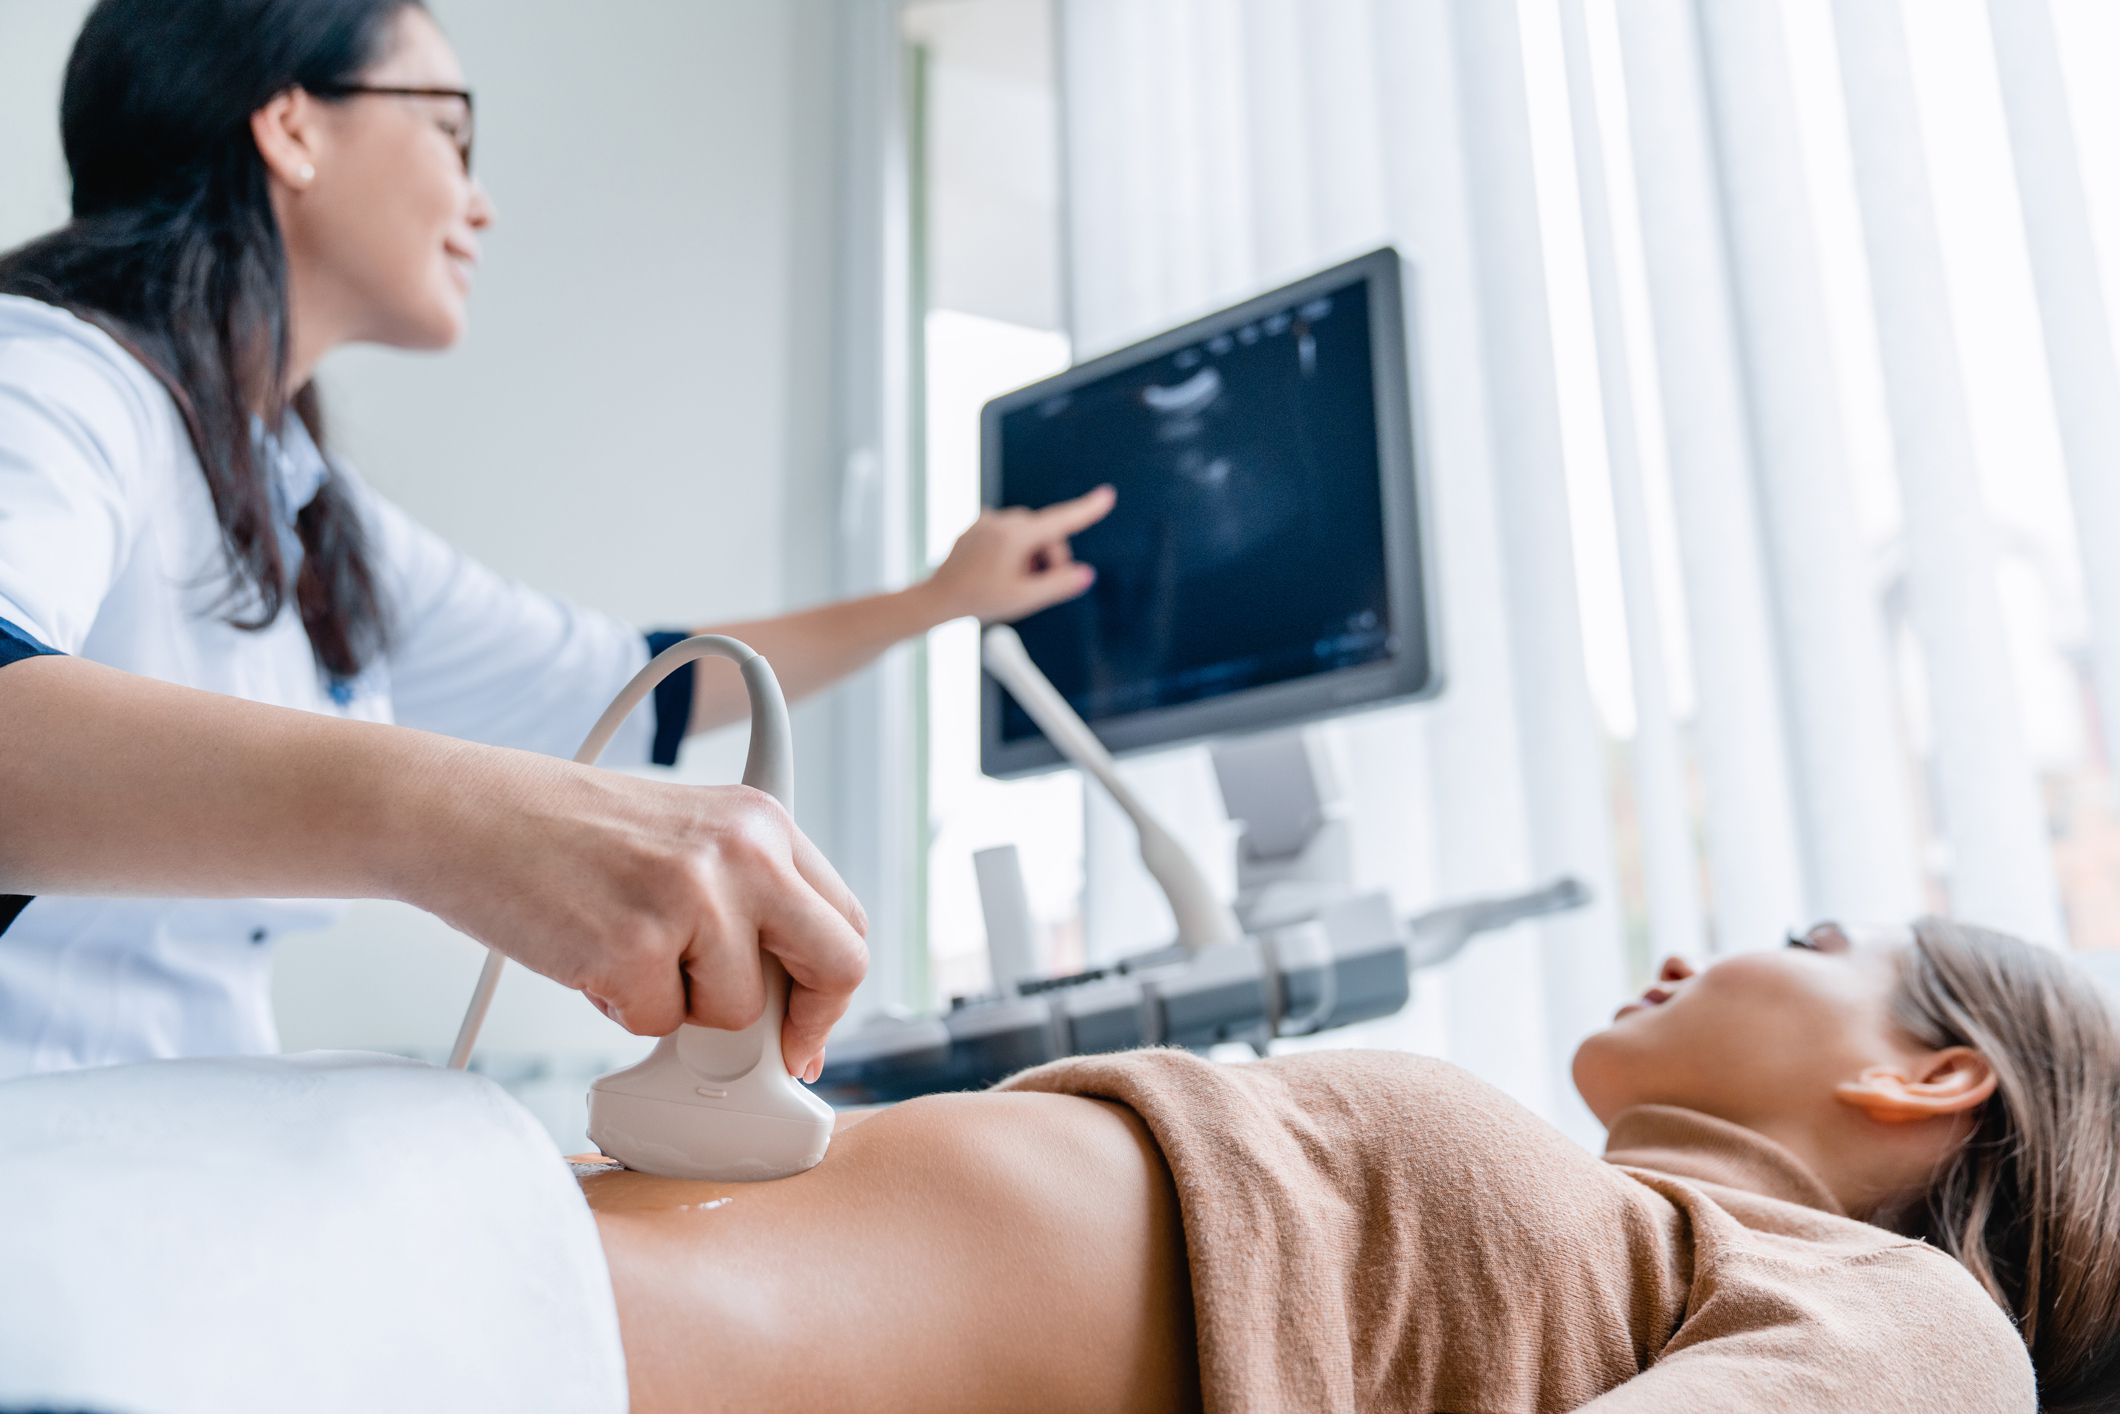 Ultrasound Accuracy for Pregnancy Issues